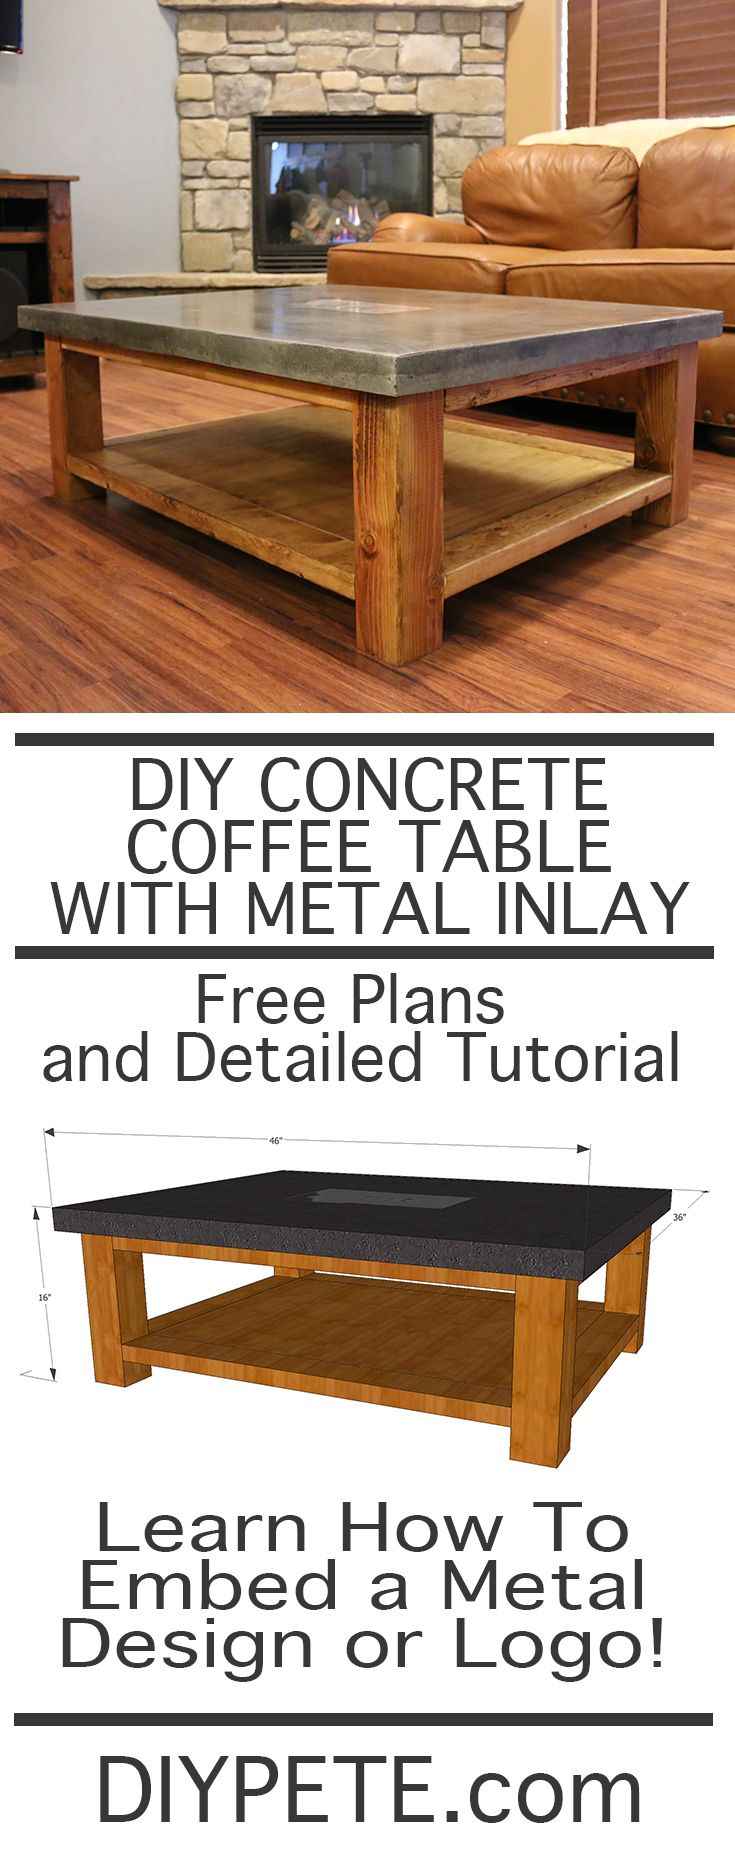 Pin by drew wood on future home pinterest tutorials free and